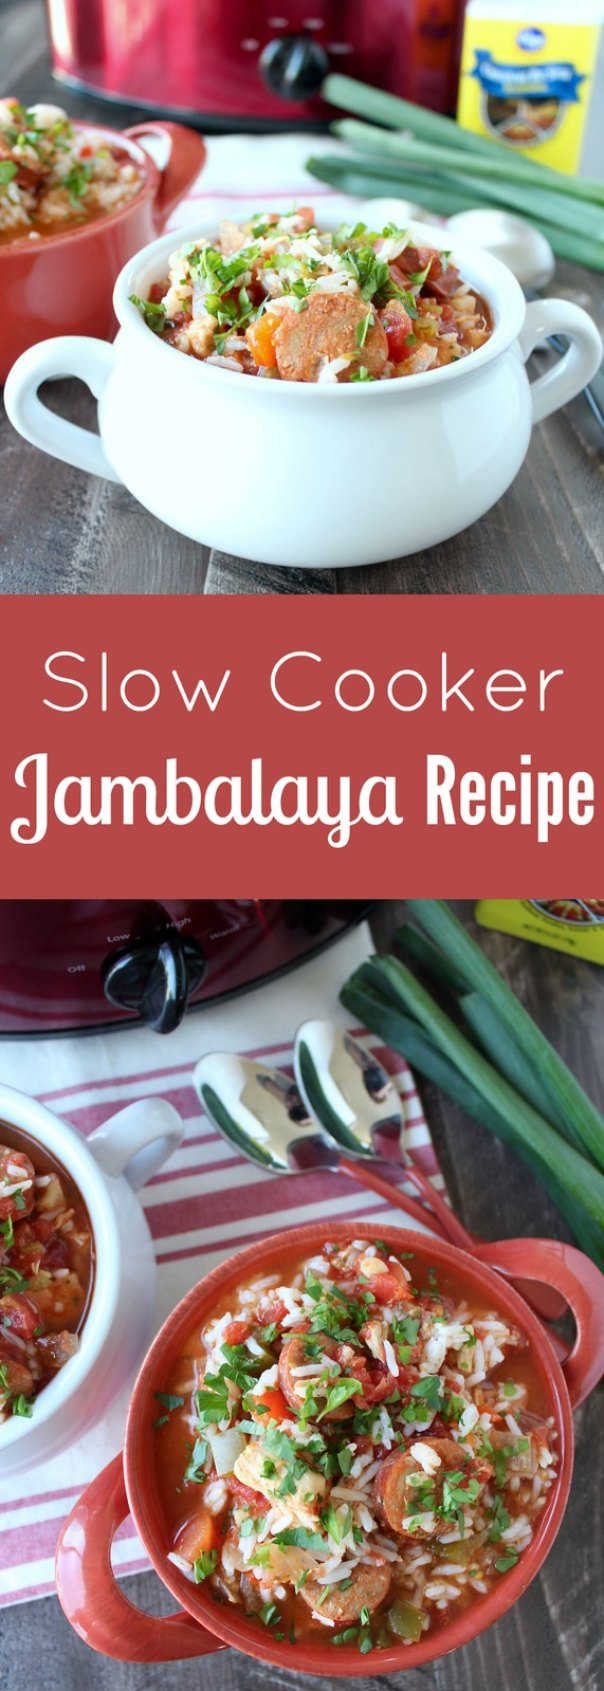 This easy, toss everything in the crock pot, Jambalaya recipe is filled with delicious spices, veggies, chicken and sausage!